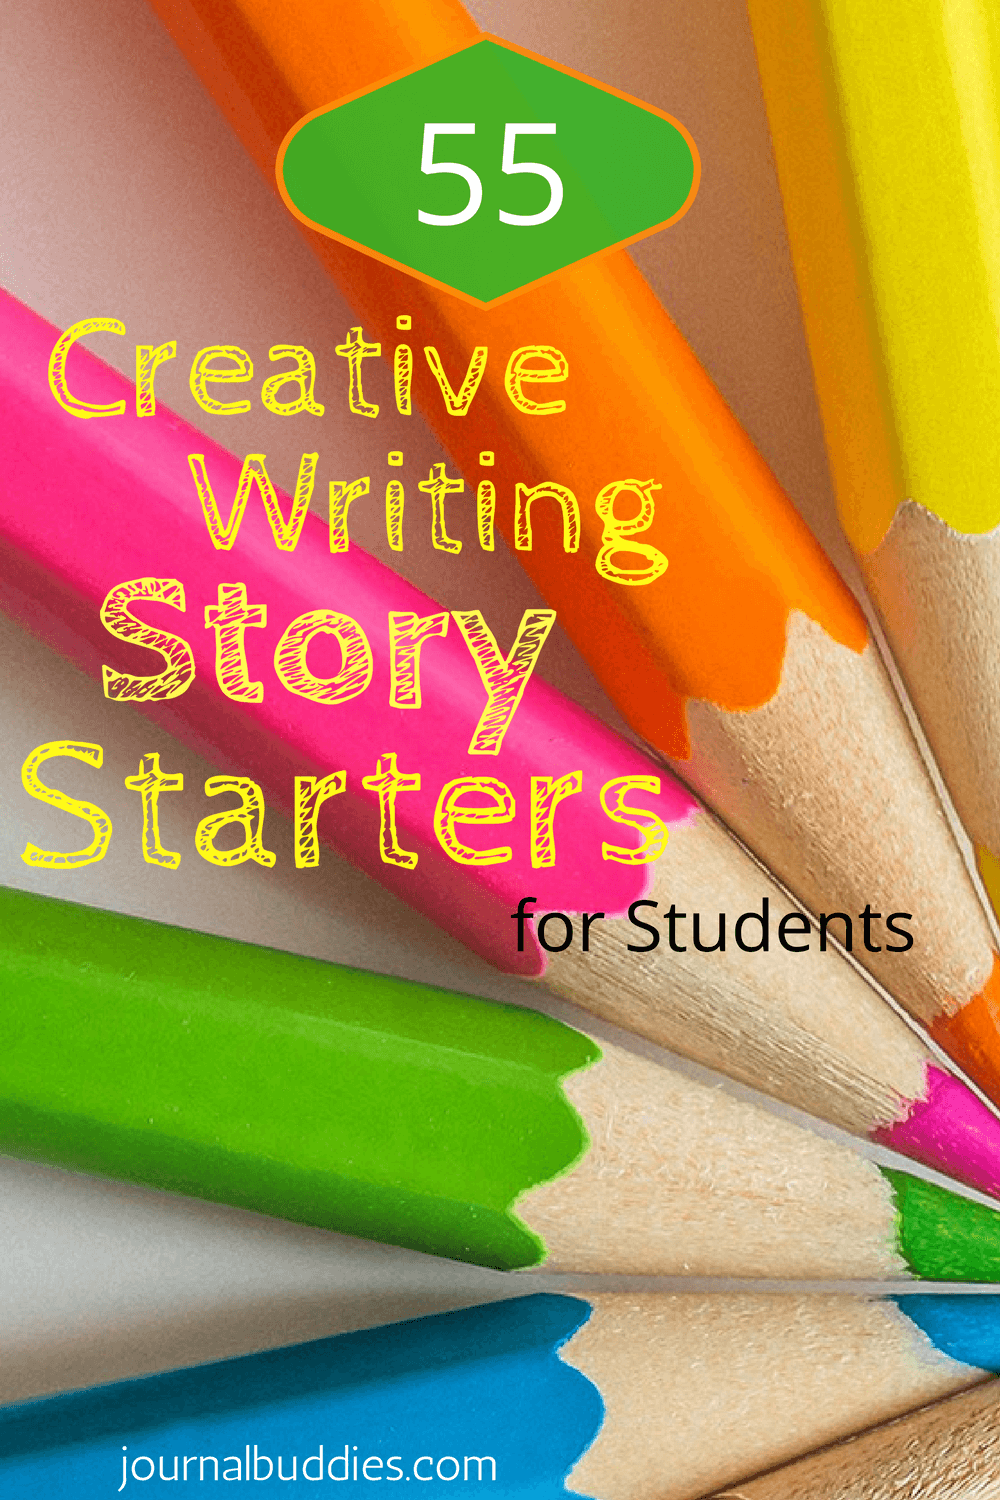 Creative Writing Story Starters for Students